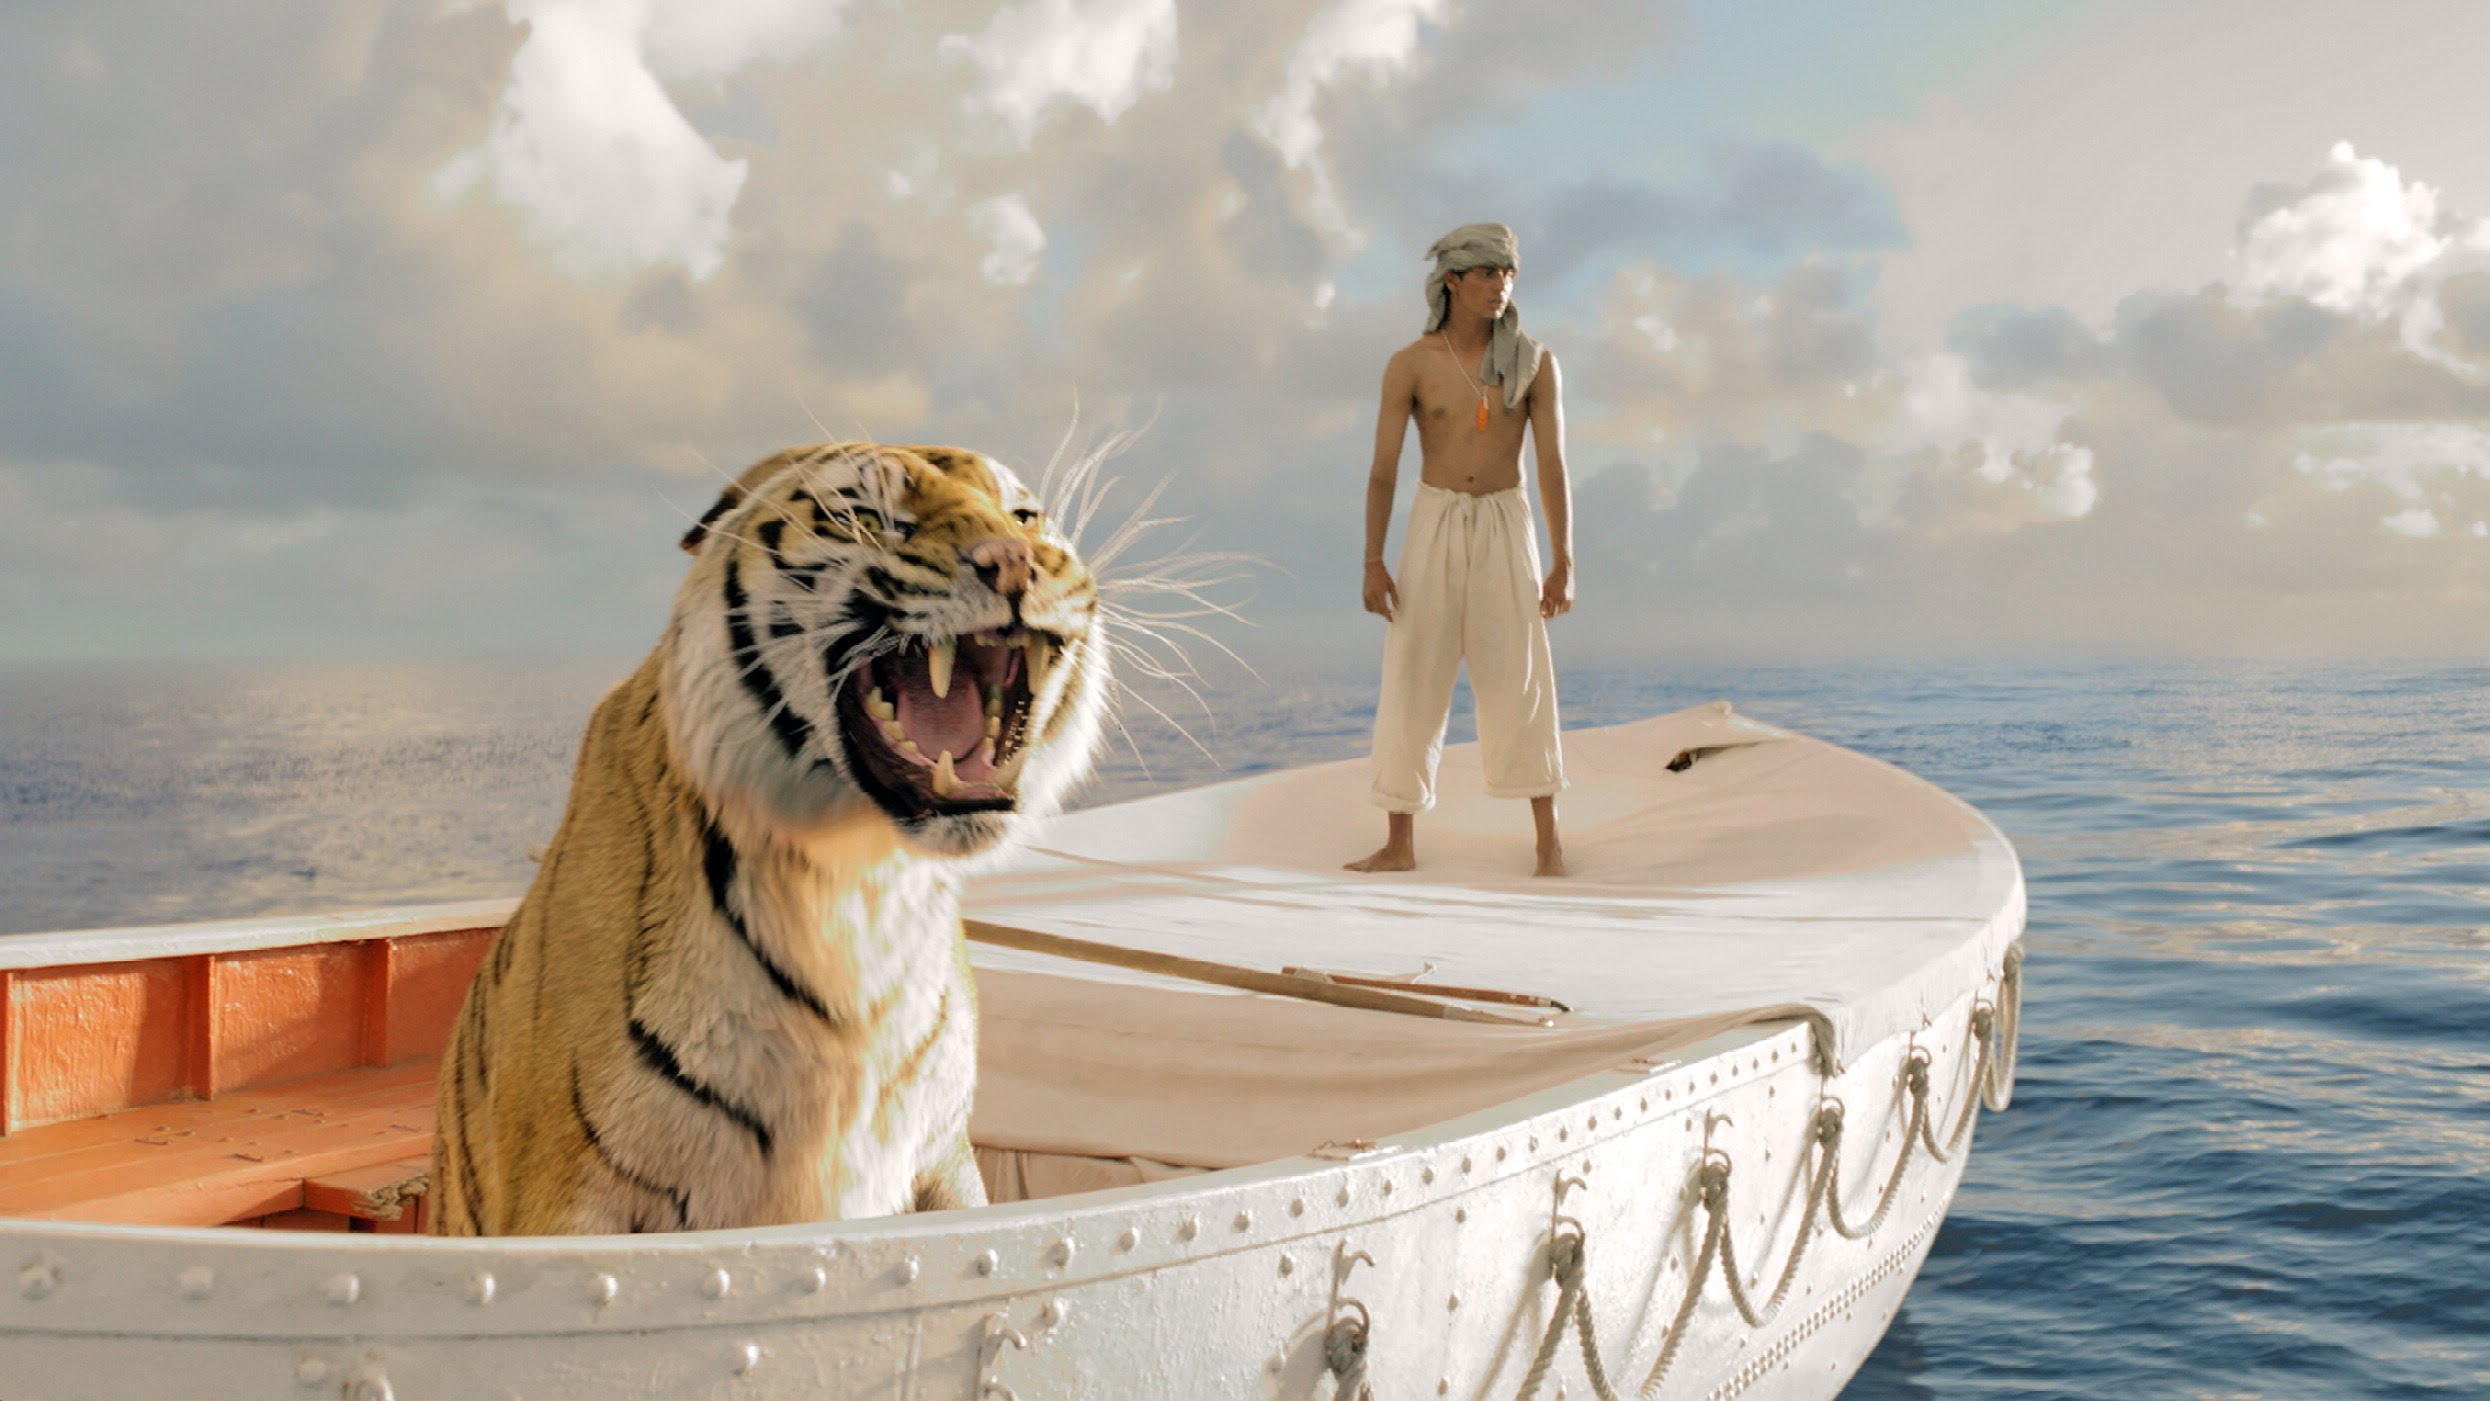 Life of Pi… on letting go